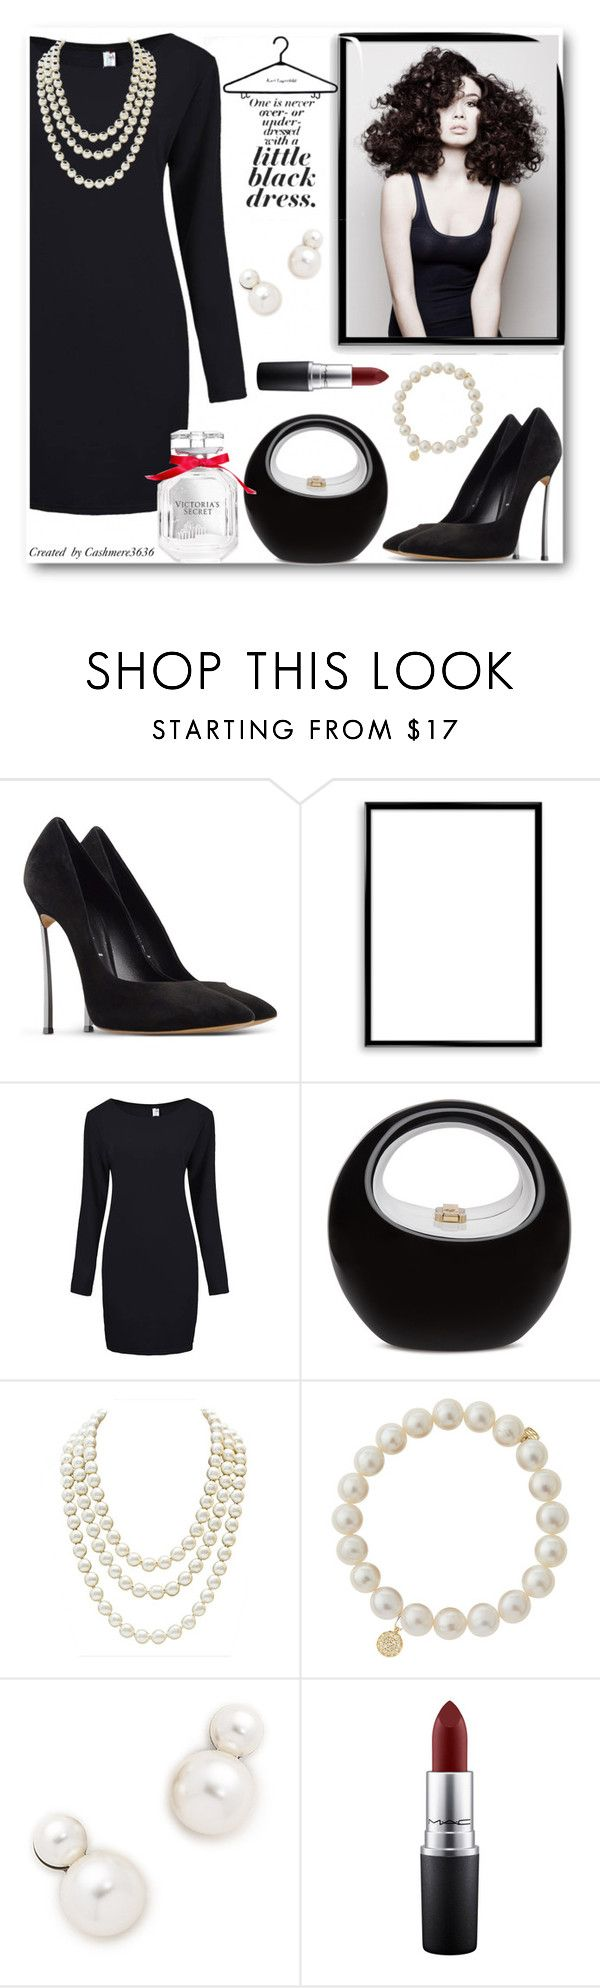 """""""Little Black Dress"""" by cashmere3636 ❤ liked on Polyvore featuring Casadei, Angelo, Bomedo, Chanel, Sydney Evan, Auden, MAC Cosmetics and Victoria's Secret"""